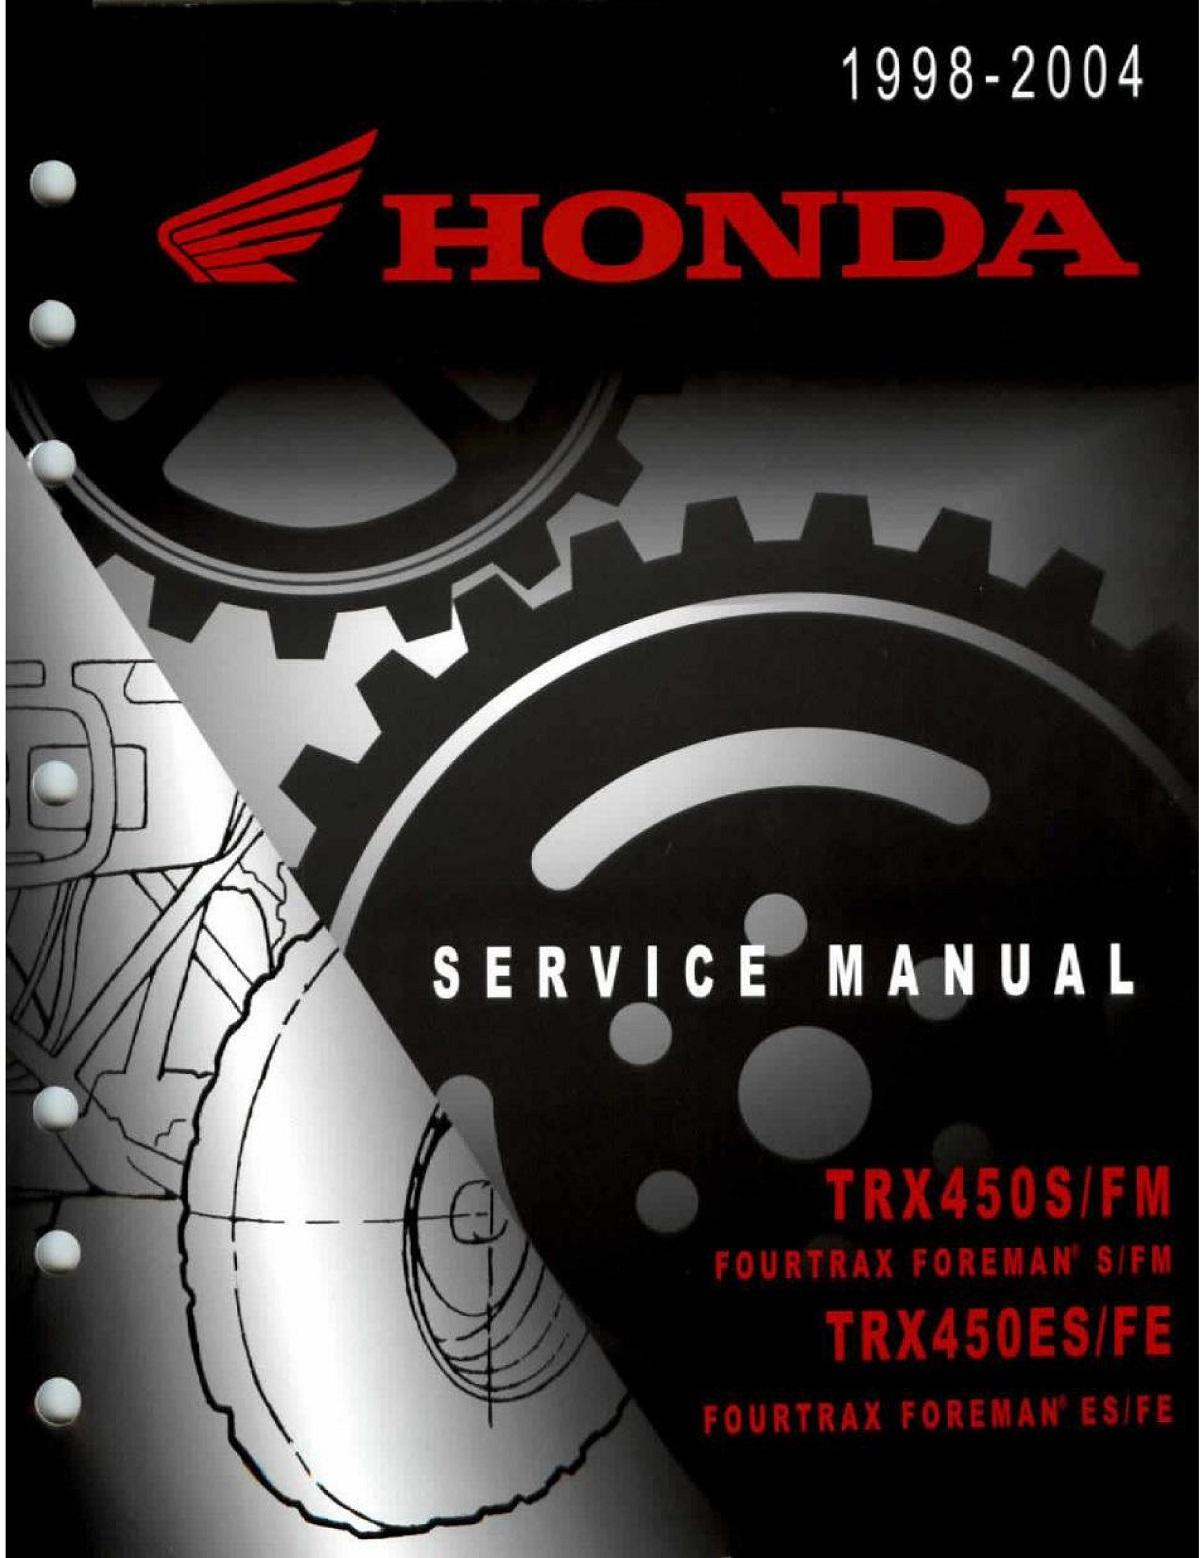 Workshop Manual for Honda TRX450FE (1998-2004)